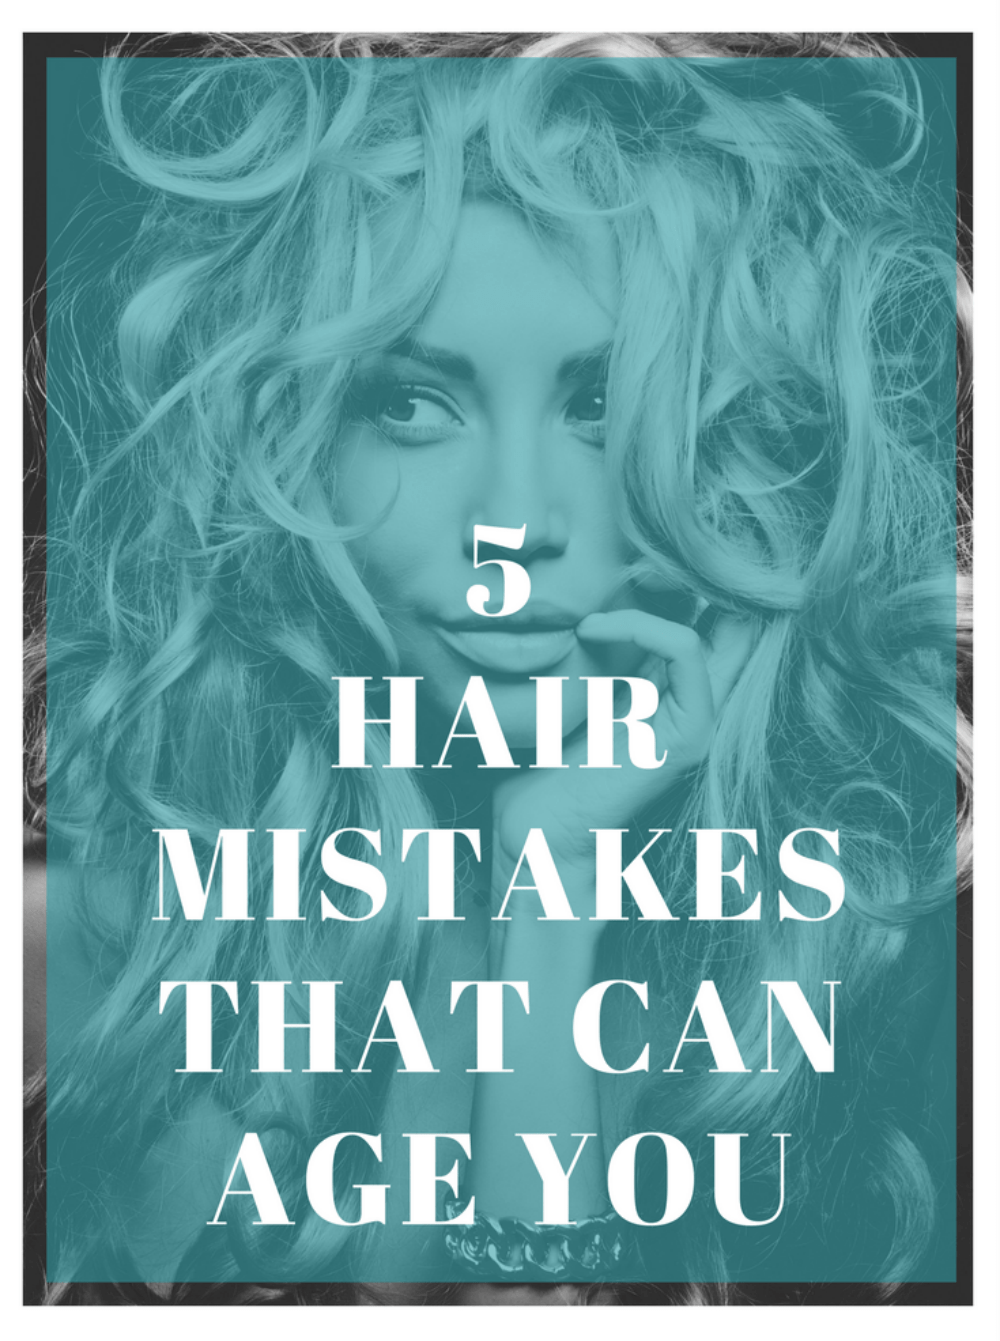 5 Hair Mistakes That Can Age You